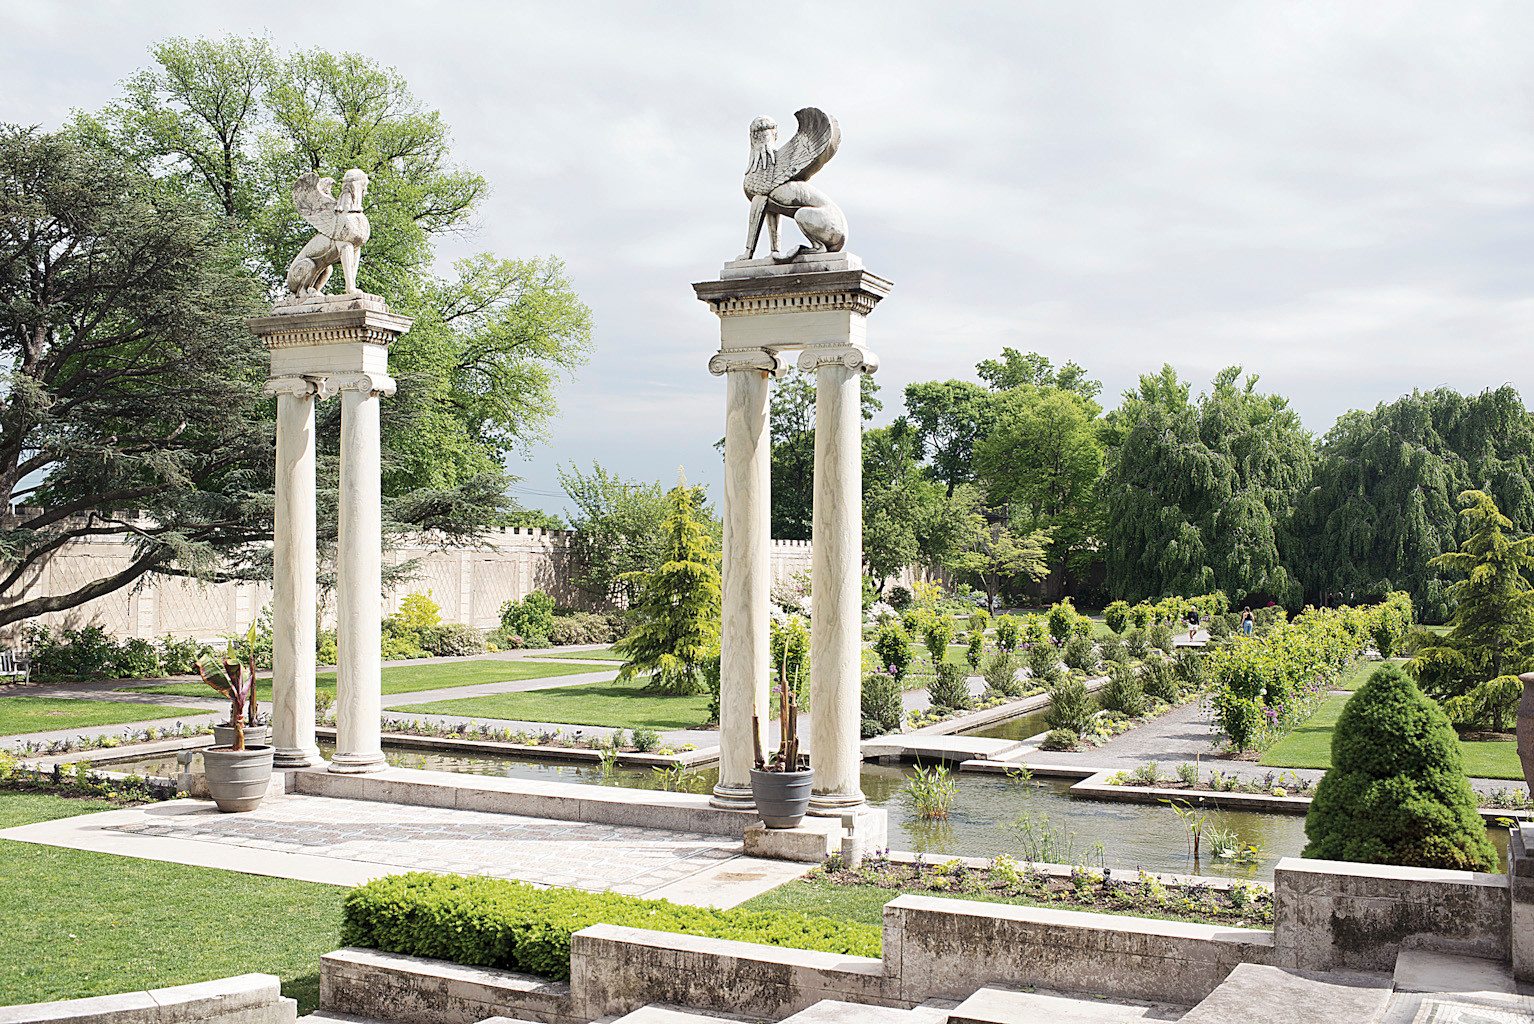 Greco-Roman columns overlook the reflecting pools in the Walled Gardens at Untermyer Park.